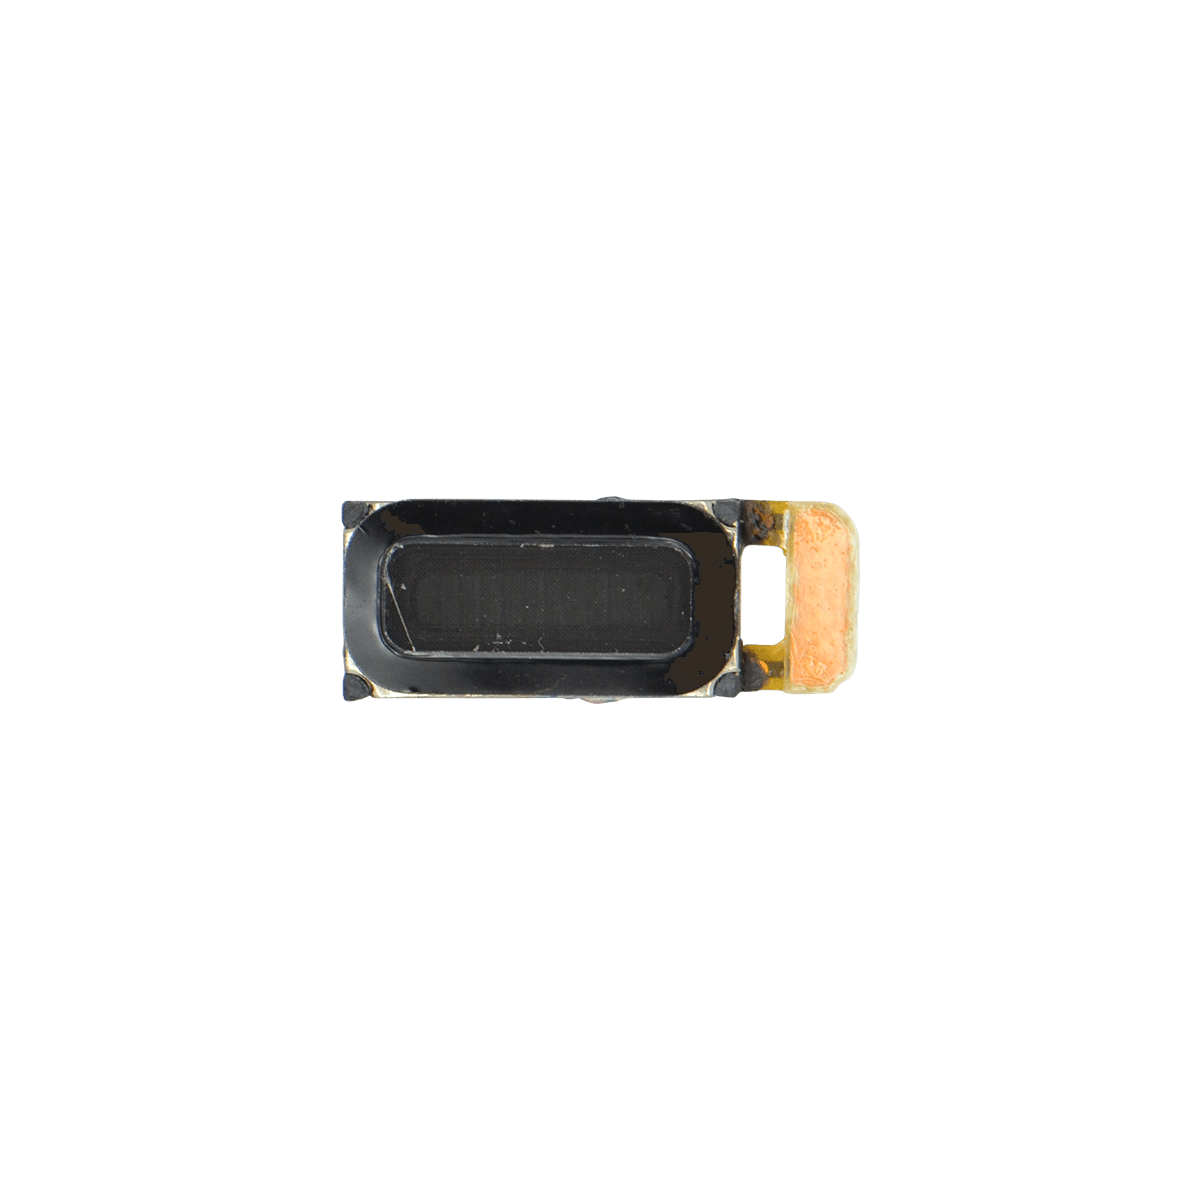 Samsung Galaxy J7 Pro (2017) Earpiece Speaker Replacement